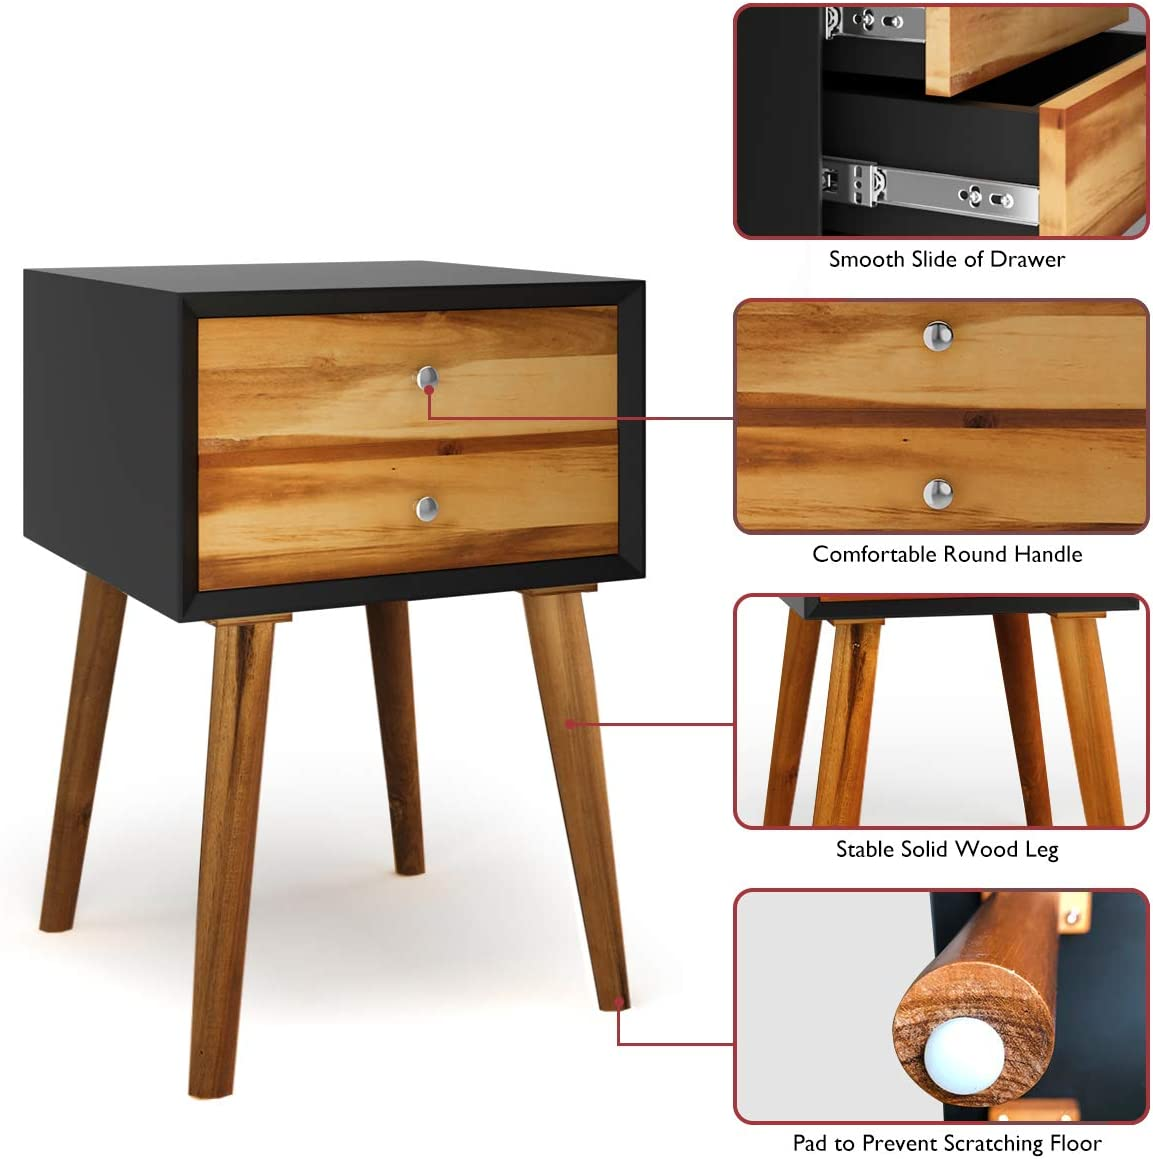 Giantex Nightstand Wooden End Table Bedside Table W/2 Glide Sliding Drawers, Mid-Century Accent Multipurpose for Bedroom, Living Room Storage Cabinet Home Furniture End Side Table (1)